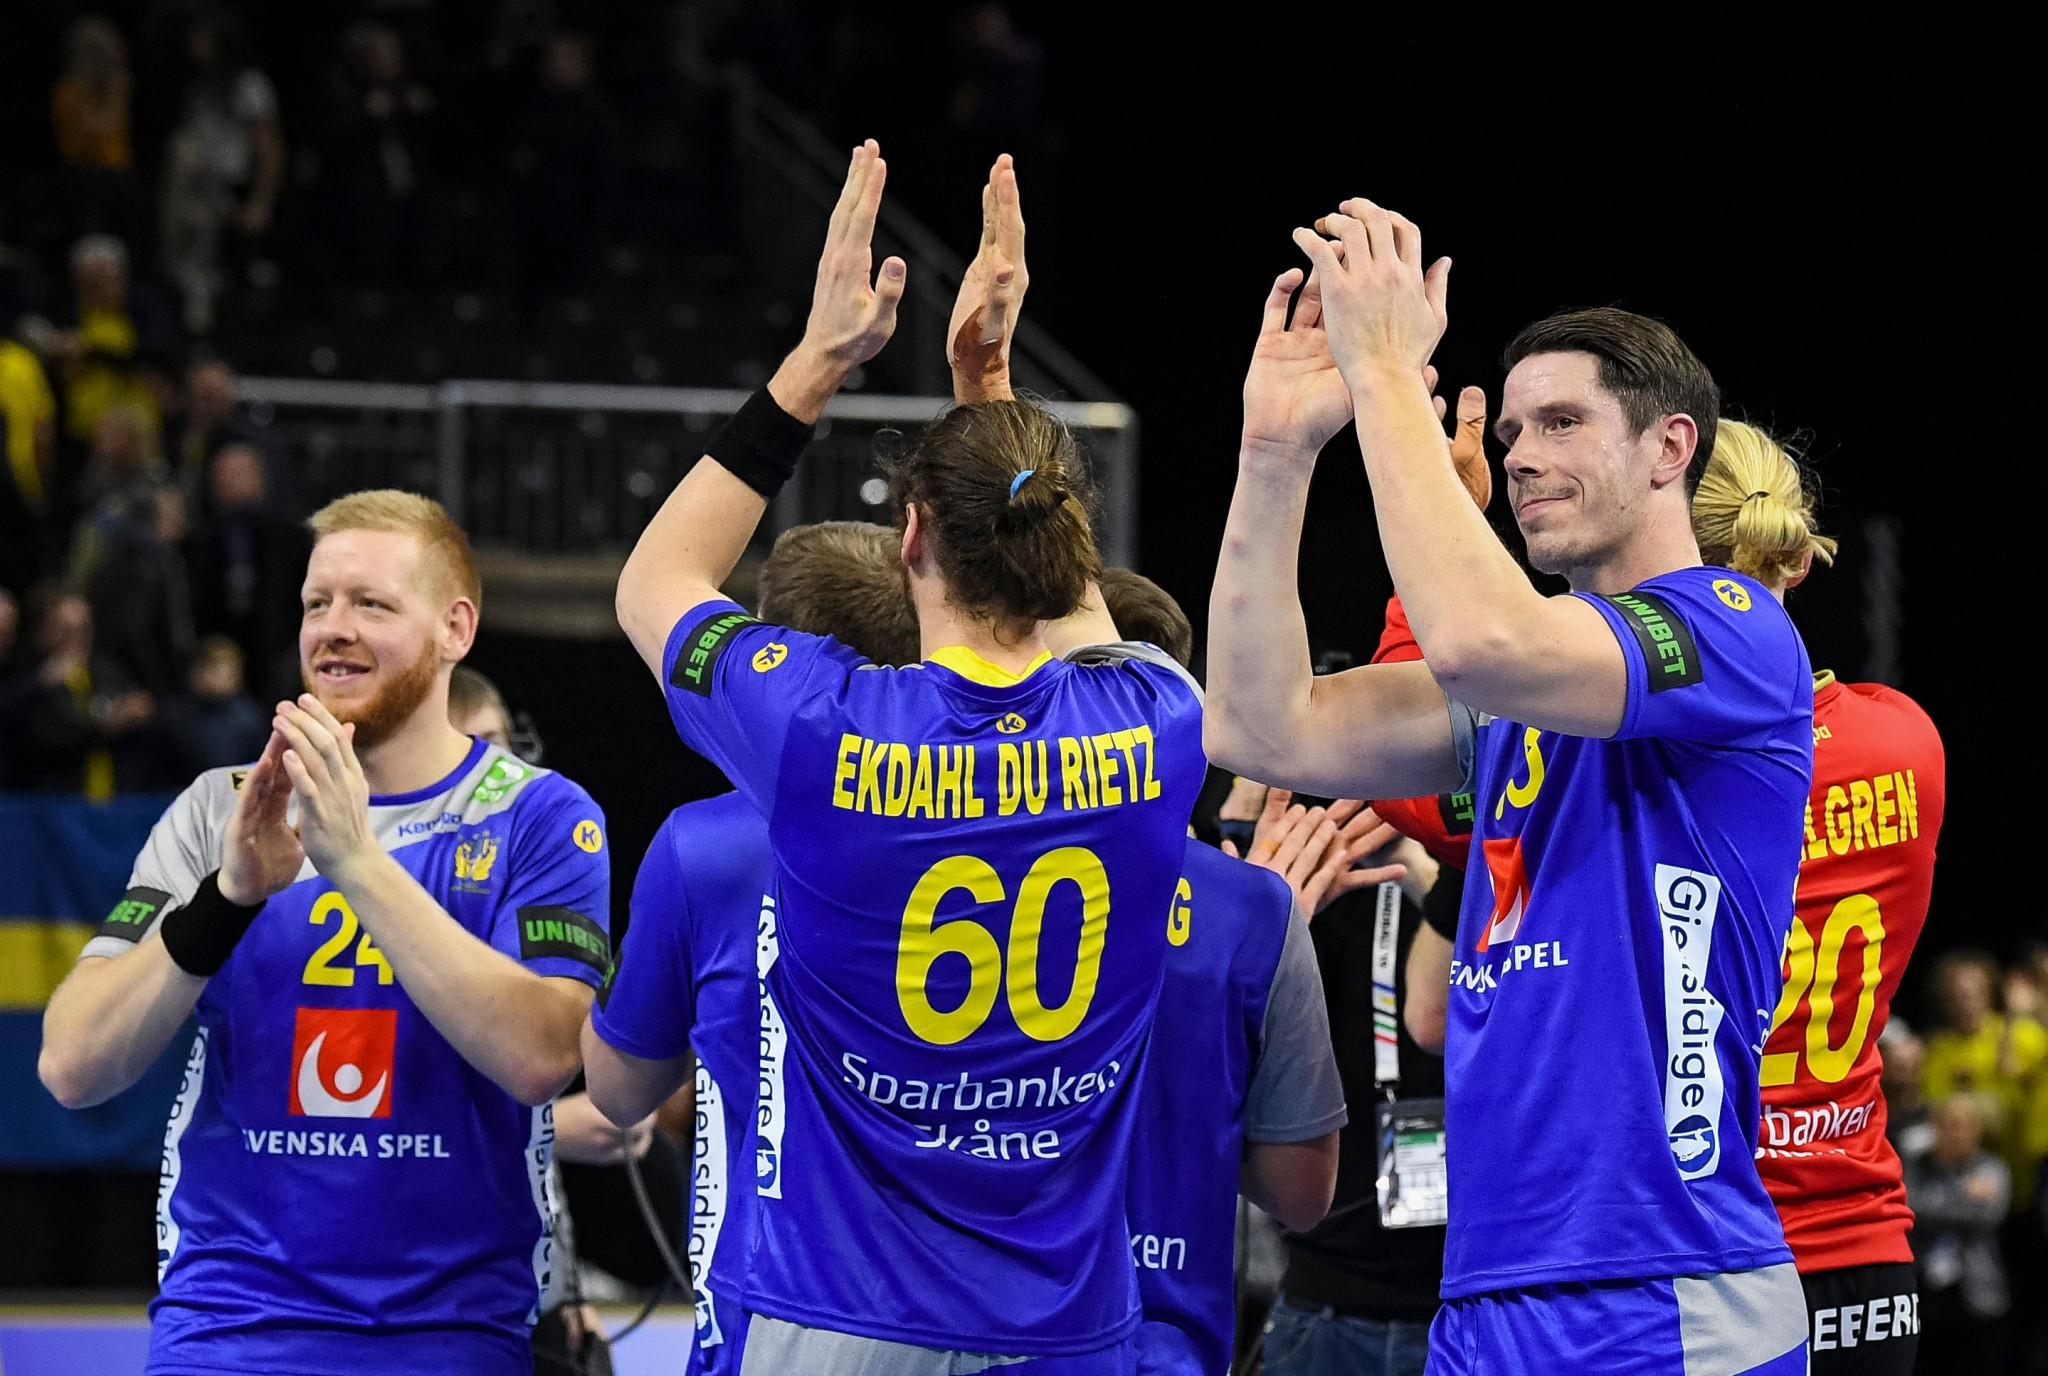 Sweden celebrate getting two wins in two at the IHF Men's Handball World Championships ©Getty Images